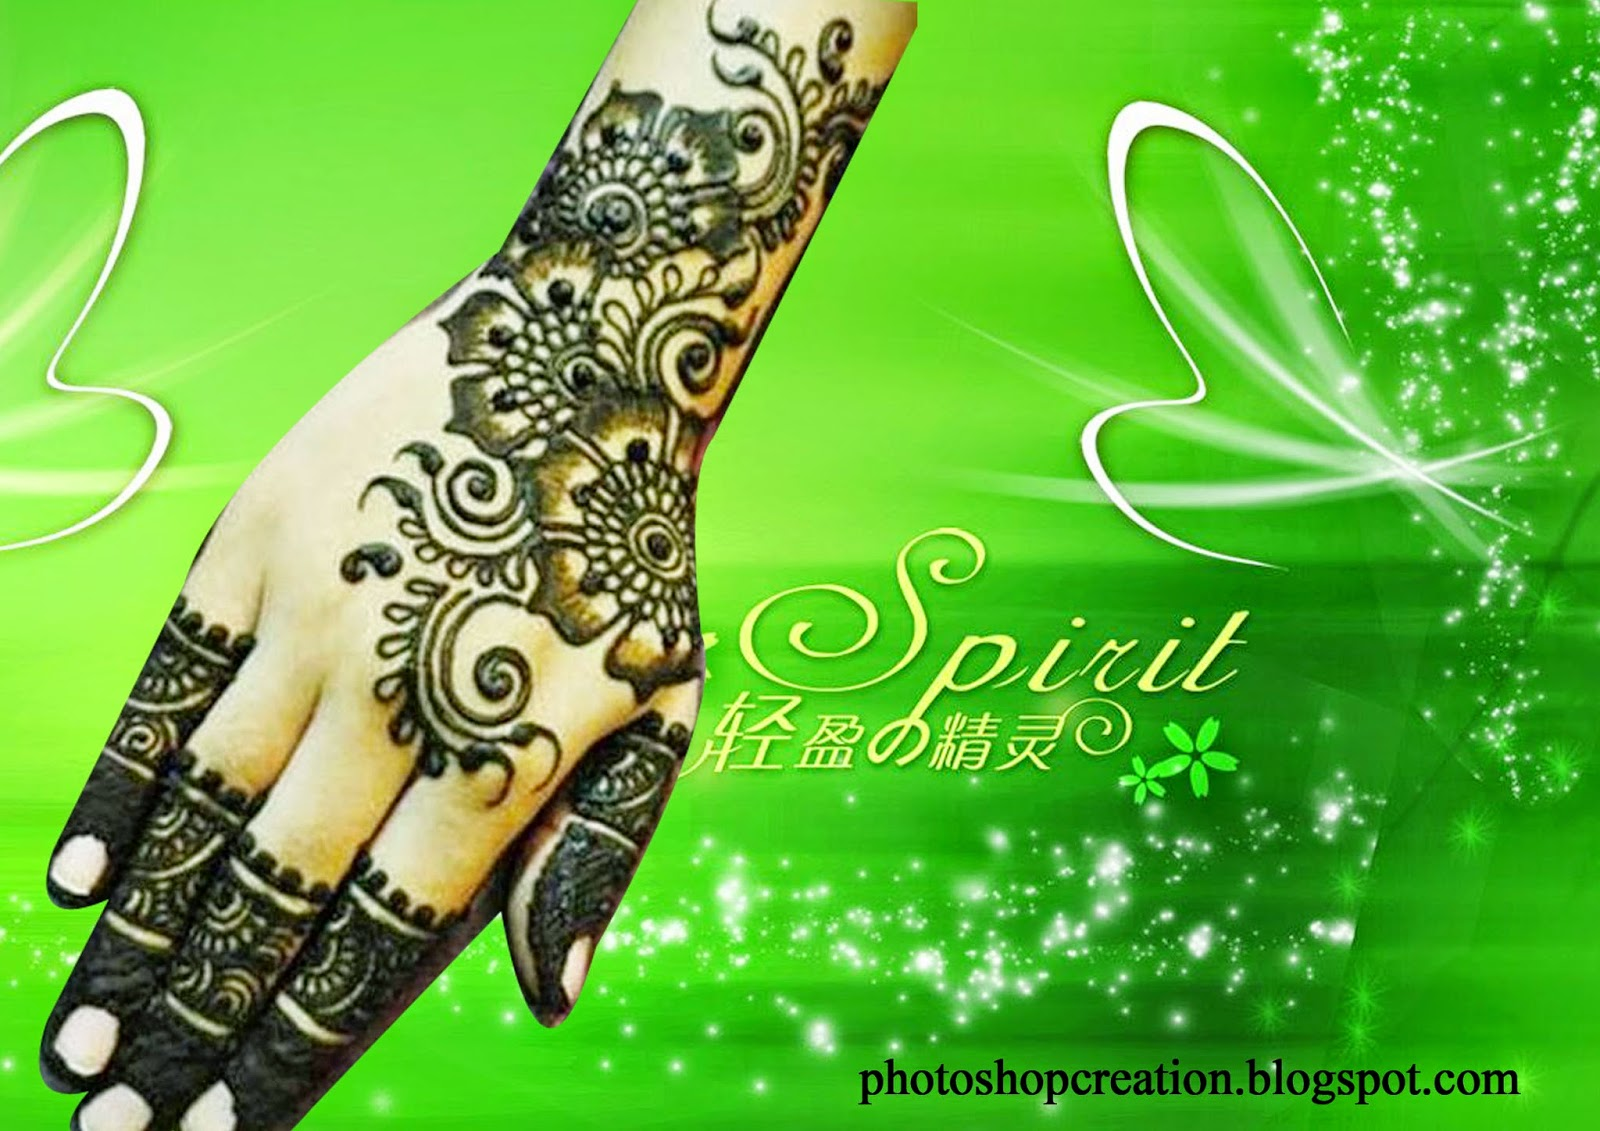 Online Home Design Free Mehandi Design For Love Photoshop Creation